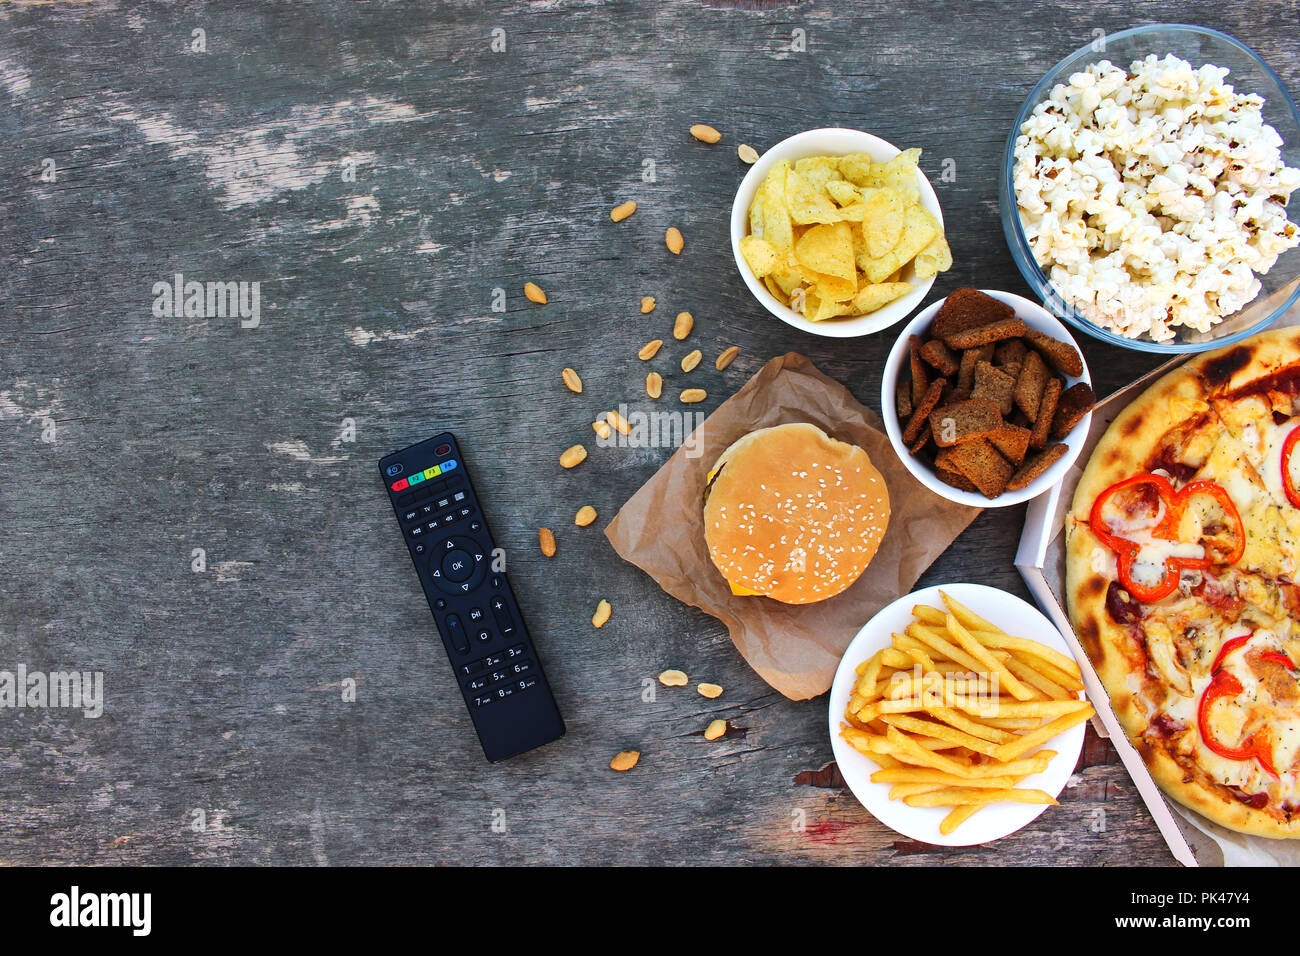 TV remote control, fast food on old wooden background. Concept of junk eating. Top view. Flat lay. - Stock Image